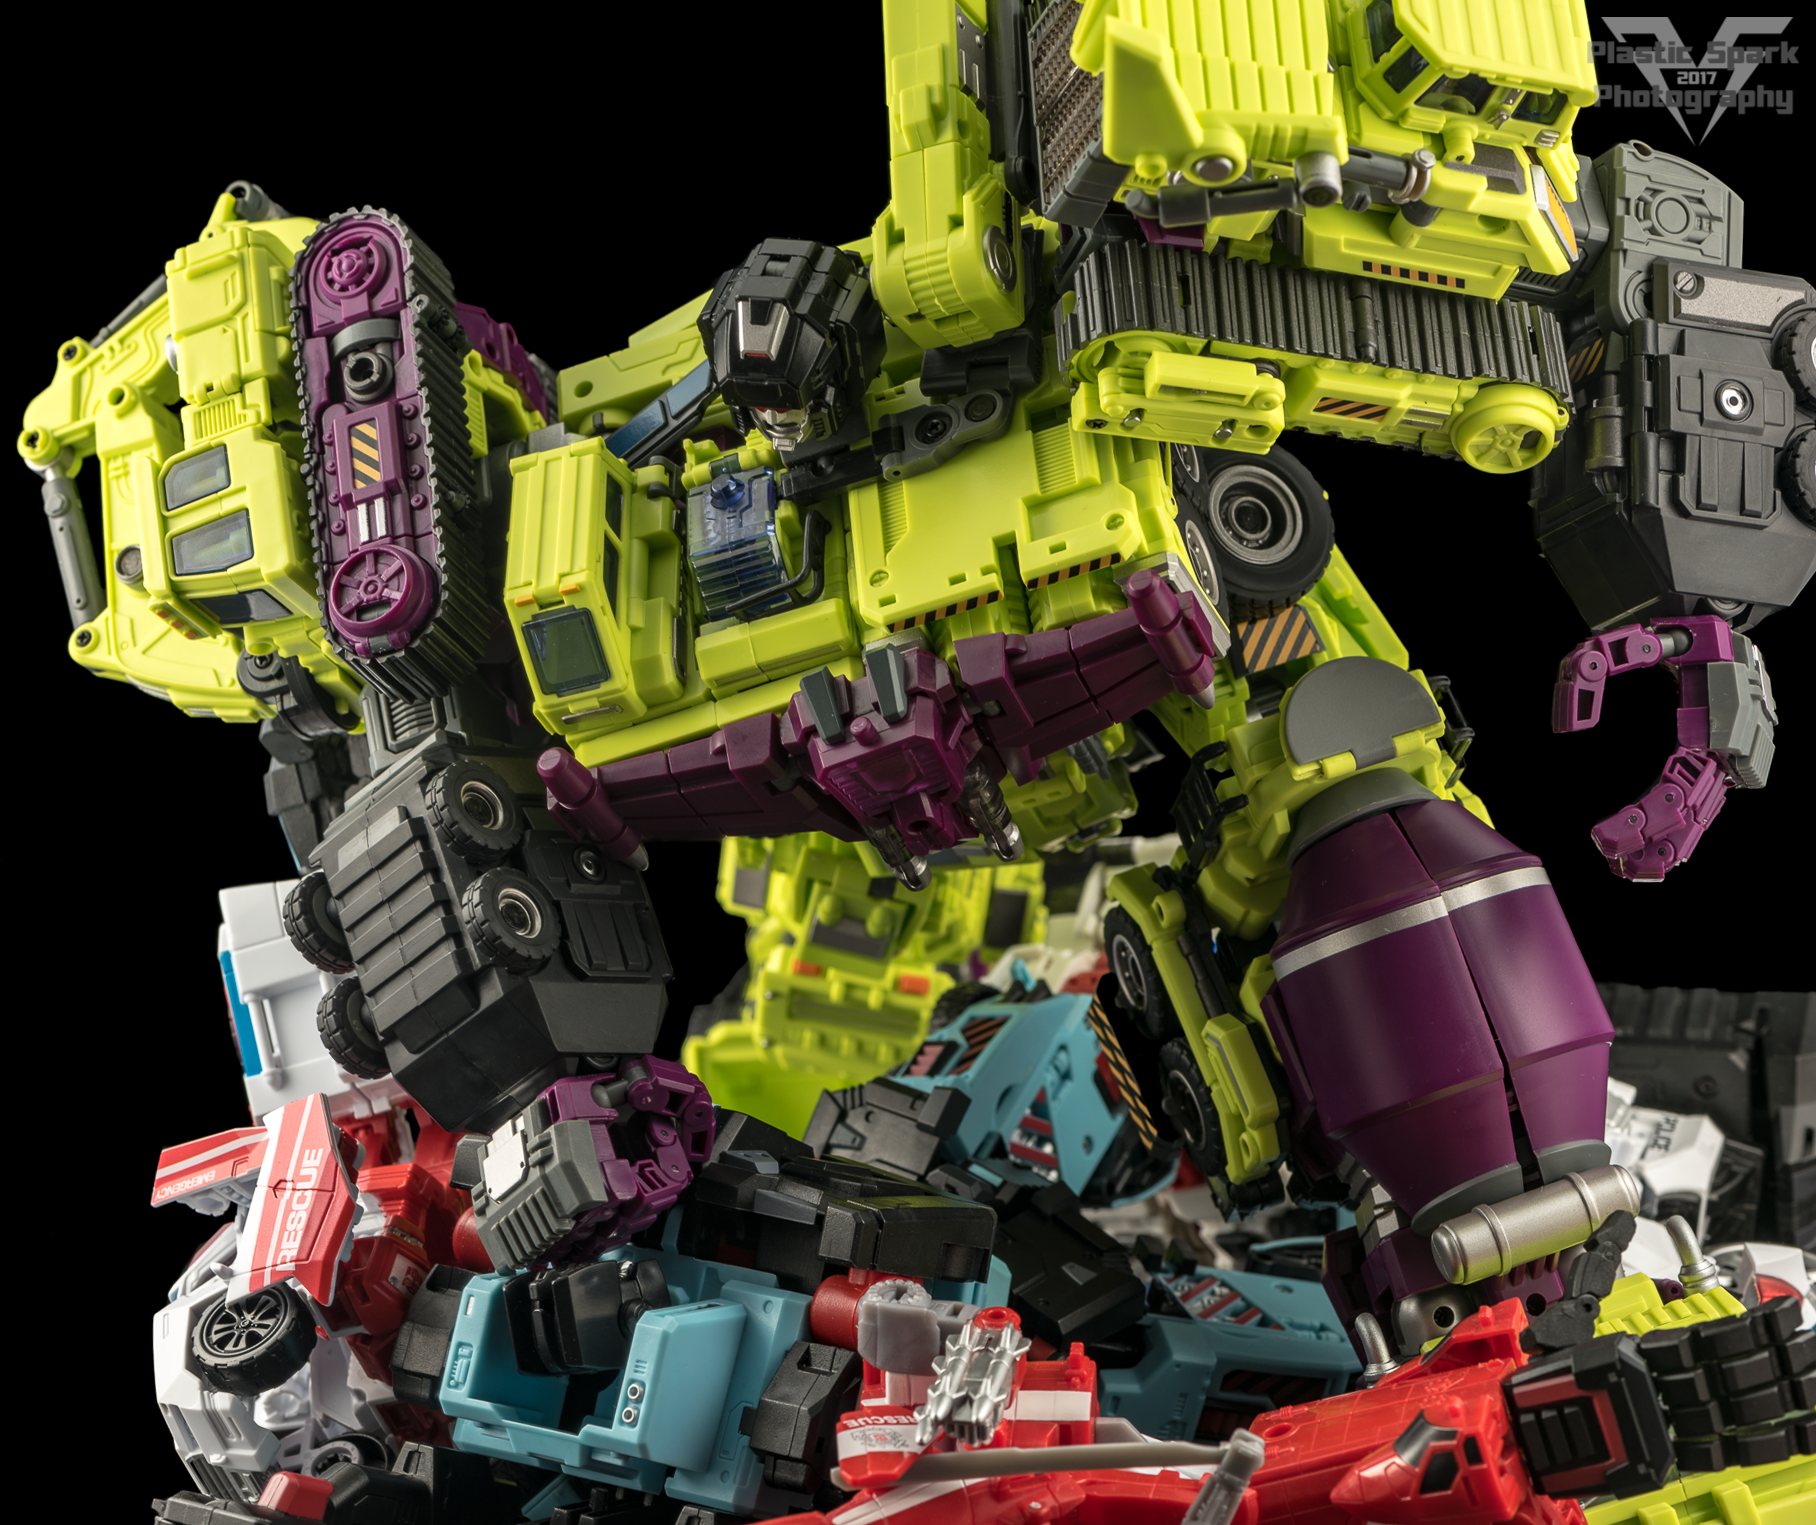 Generation-Toy-Gravity-Builder-(31-of-34).png